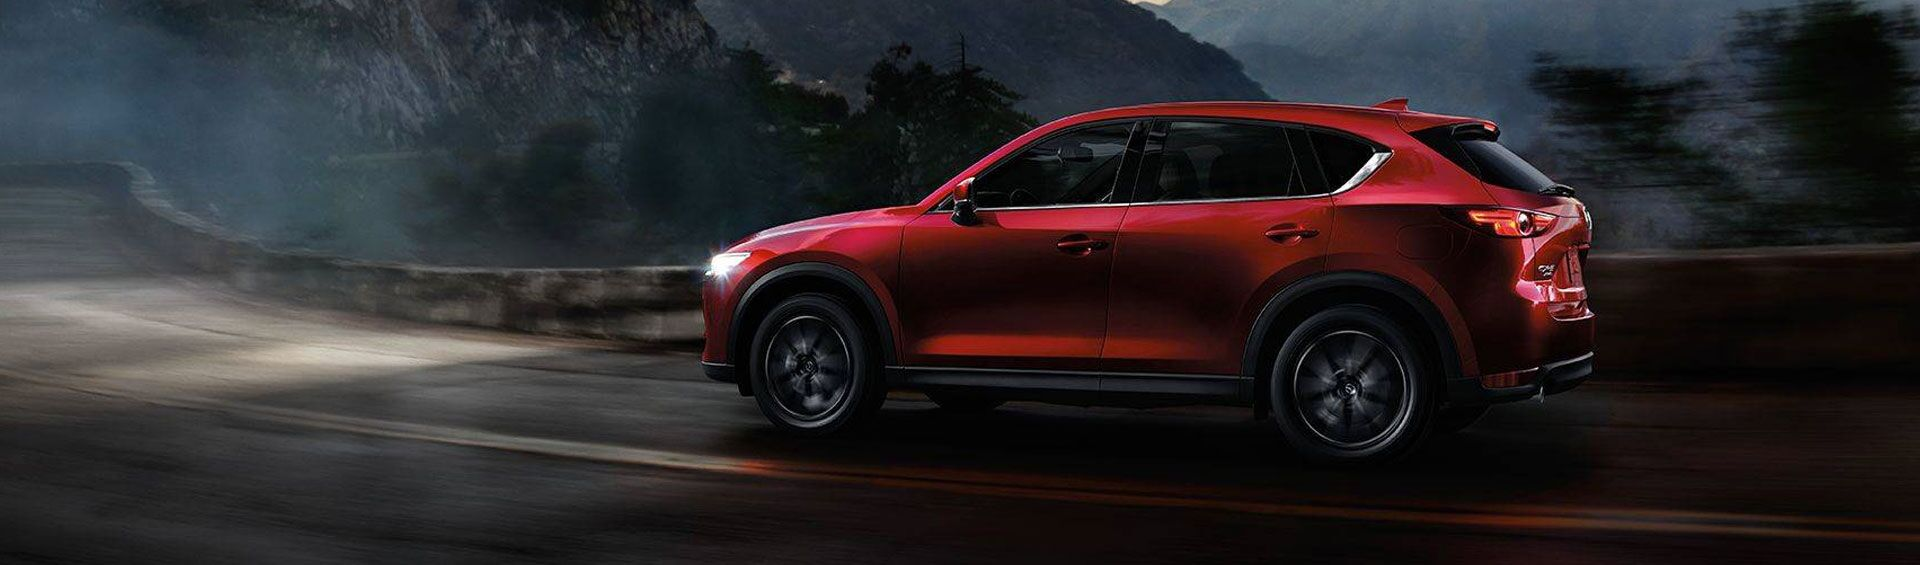 2018 Mazda CX-5 in Loma Linda